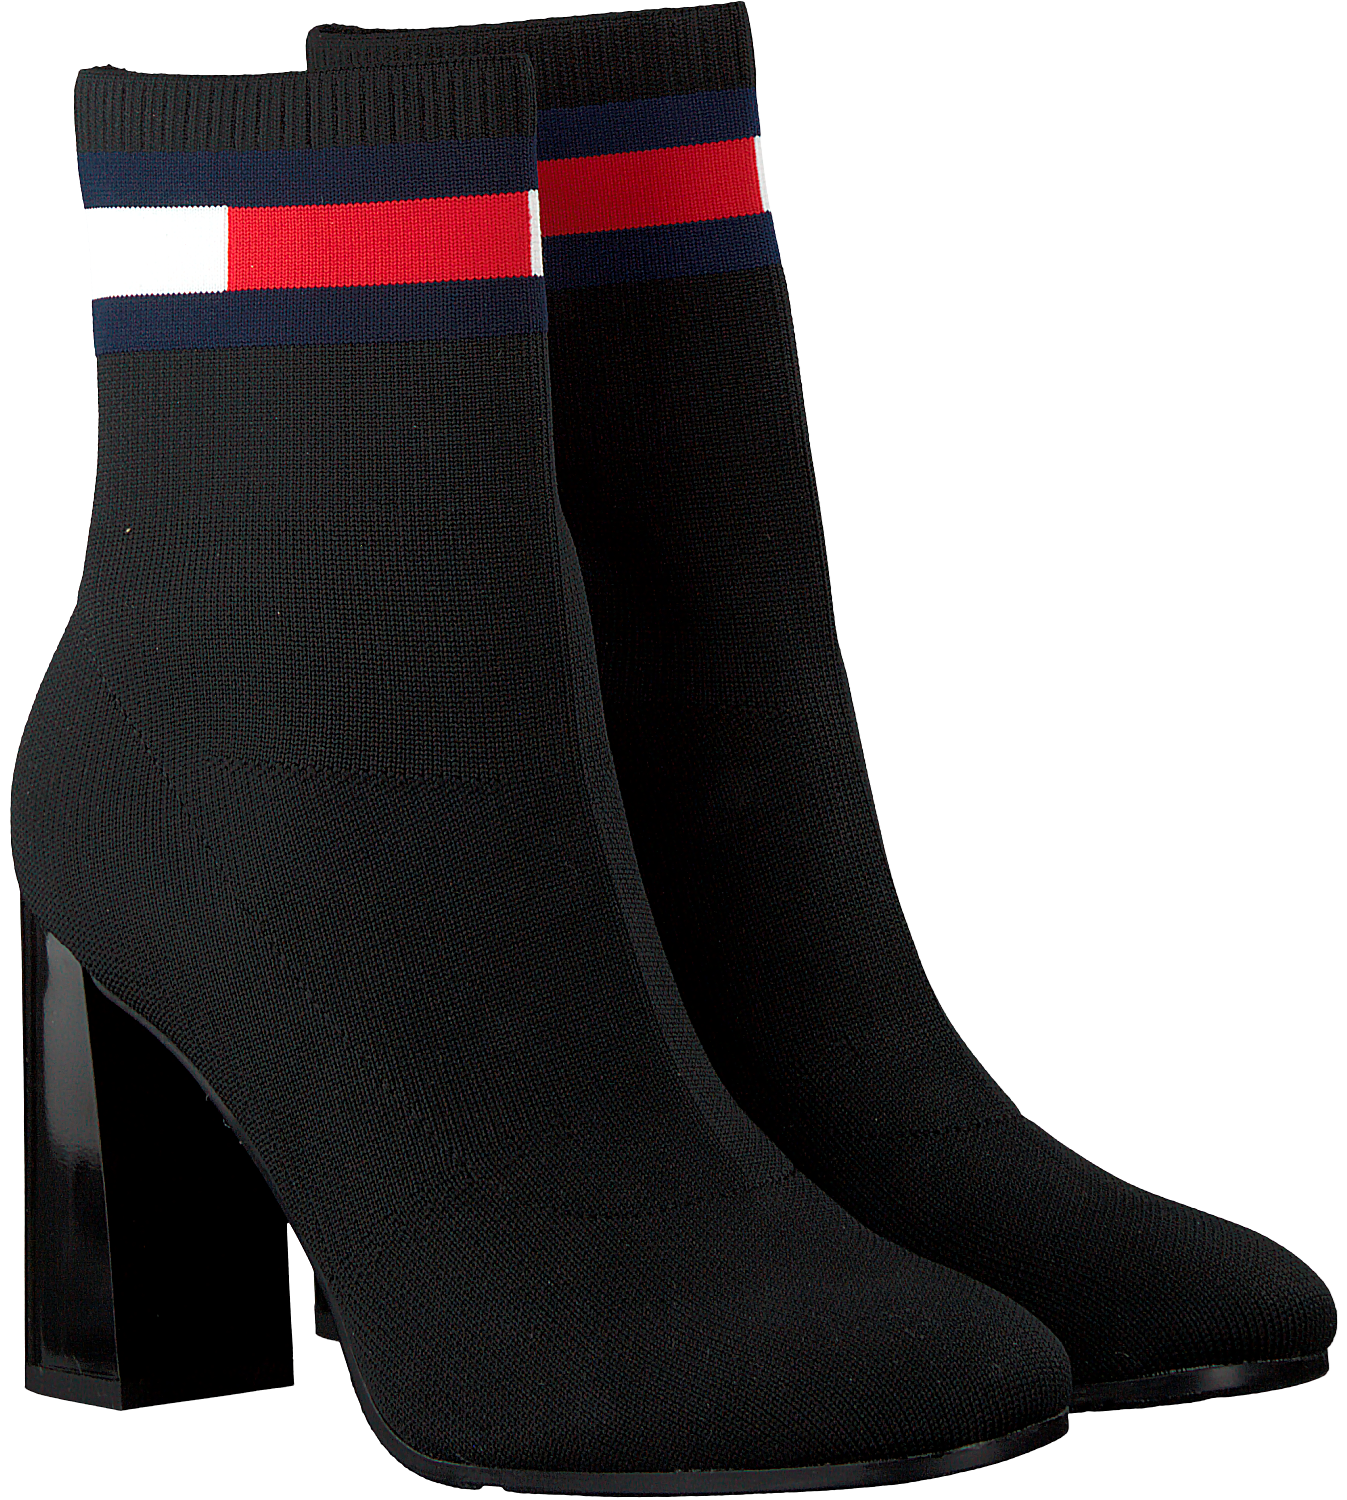 a10a3bca7 Black TOMMY HILFIGER Booties SOCK HEELED BOOT - large. Next